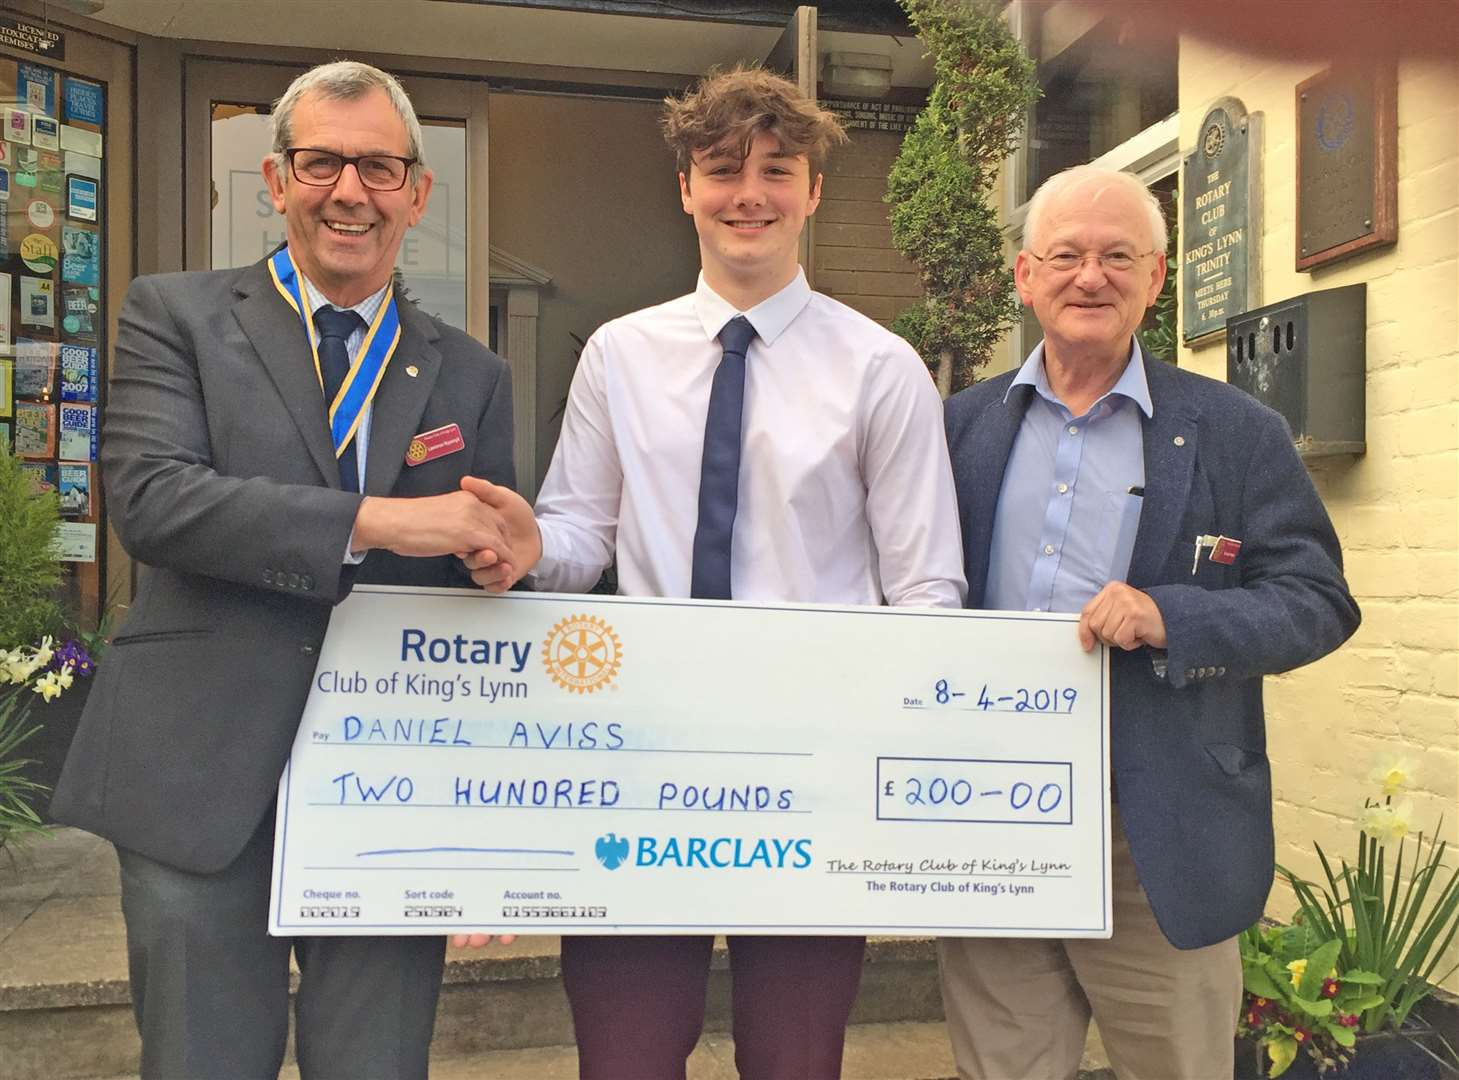 The attached photograph was taken at the Stuart House Hotel on Monday 8th April at a regular meeting of the R.C. of King 's Lynn. From the left: Rotary Club President , Pip Rippengill - K.E.S. Student, Daniel Aviss - Rotary Club Vocational chairman, Richard Waite, the cheque in for £200 (8425242)